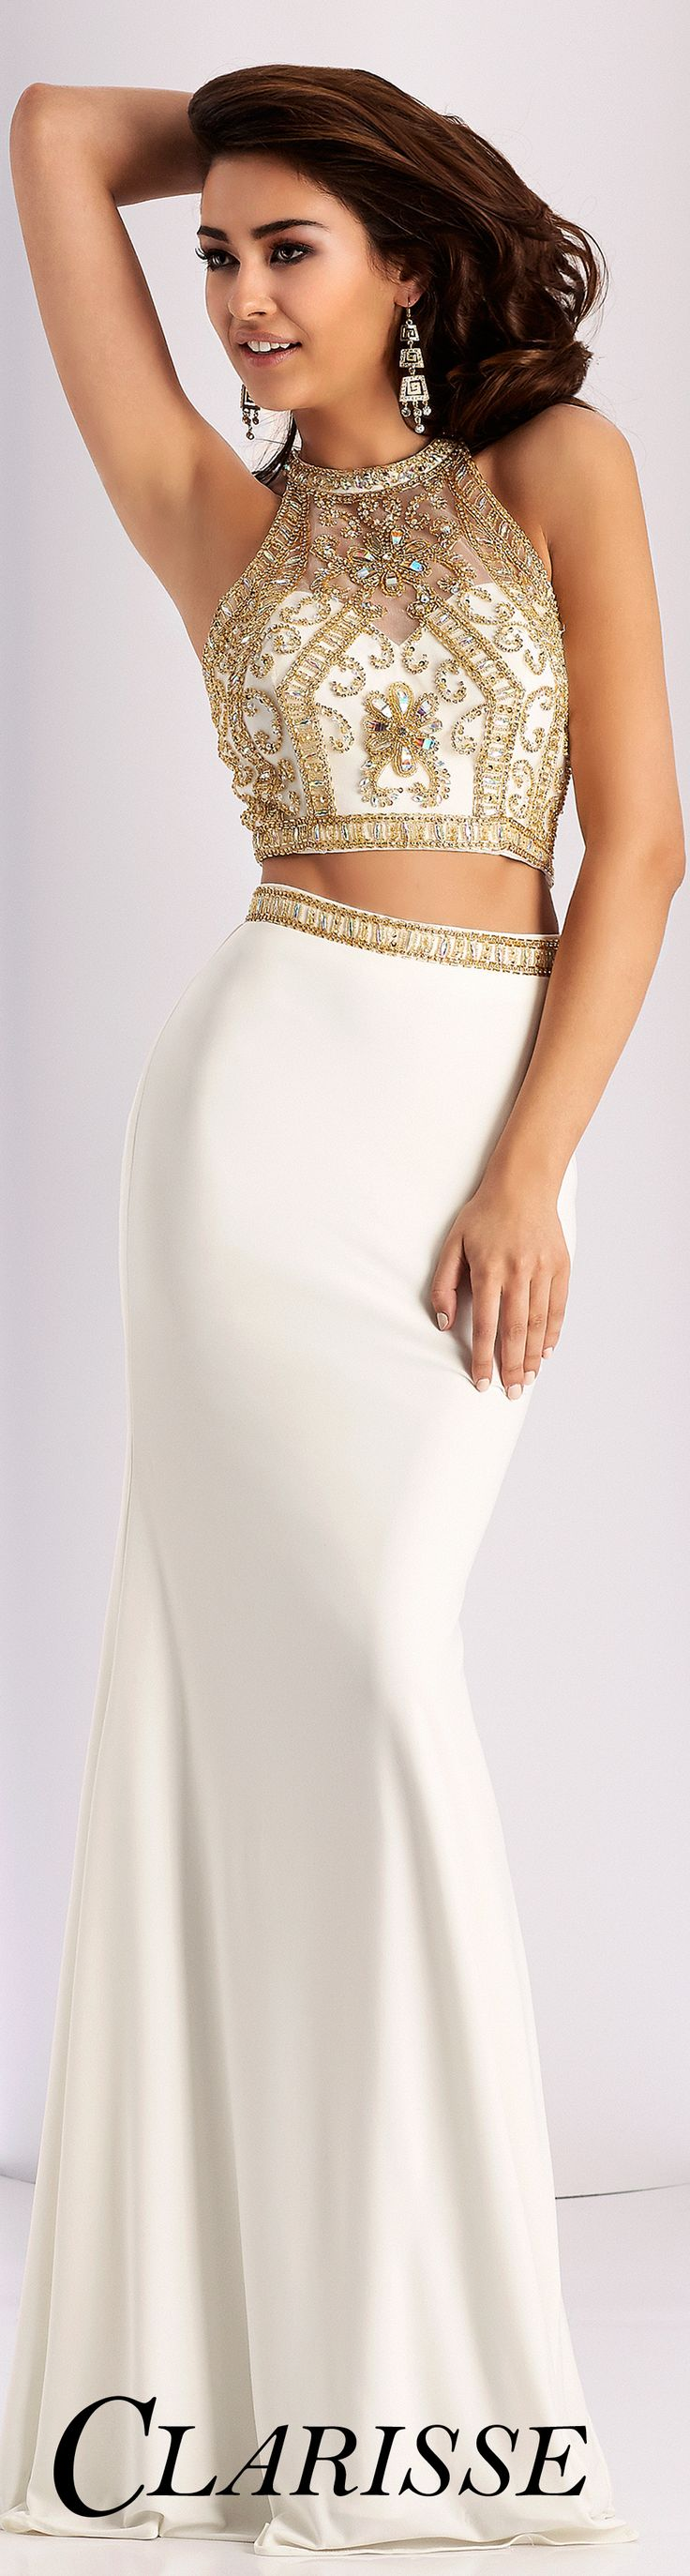 Best Selling Clarisse Prom Dress 3006. Two piece fitted prom dress with beaded top and sheer mesh back. COLOR: Ivory/Gold, Gray/Silver, Marsala/Silver, Navy/Silver, Teal/Silver SIZE: 00-20 Find your nearest retailer by clicking the image!